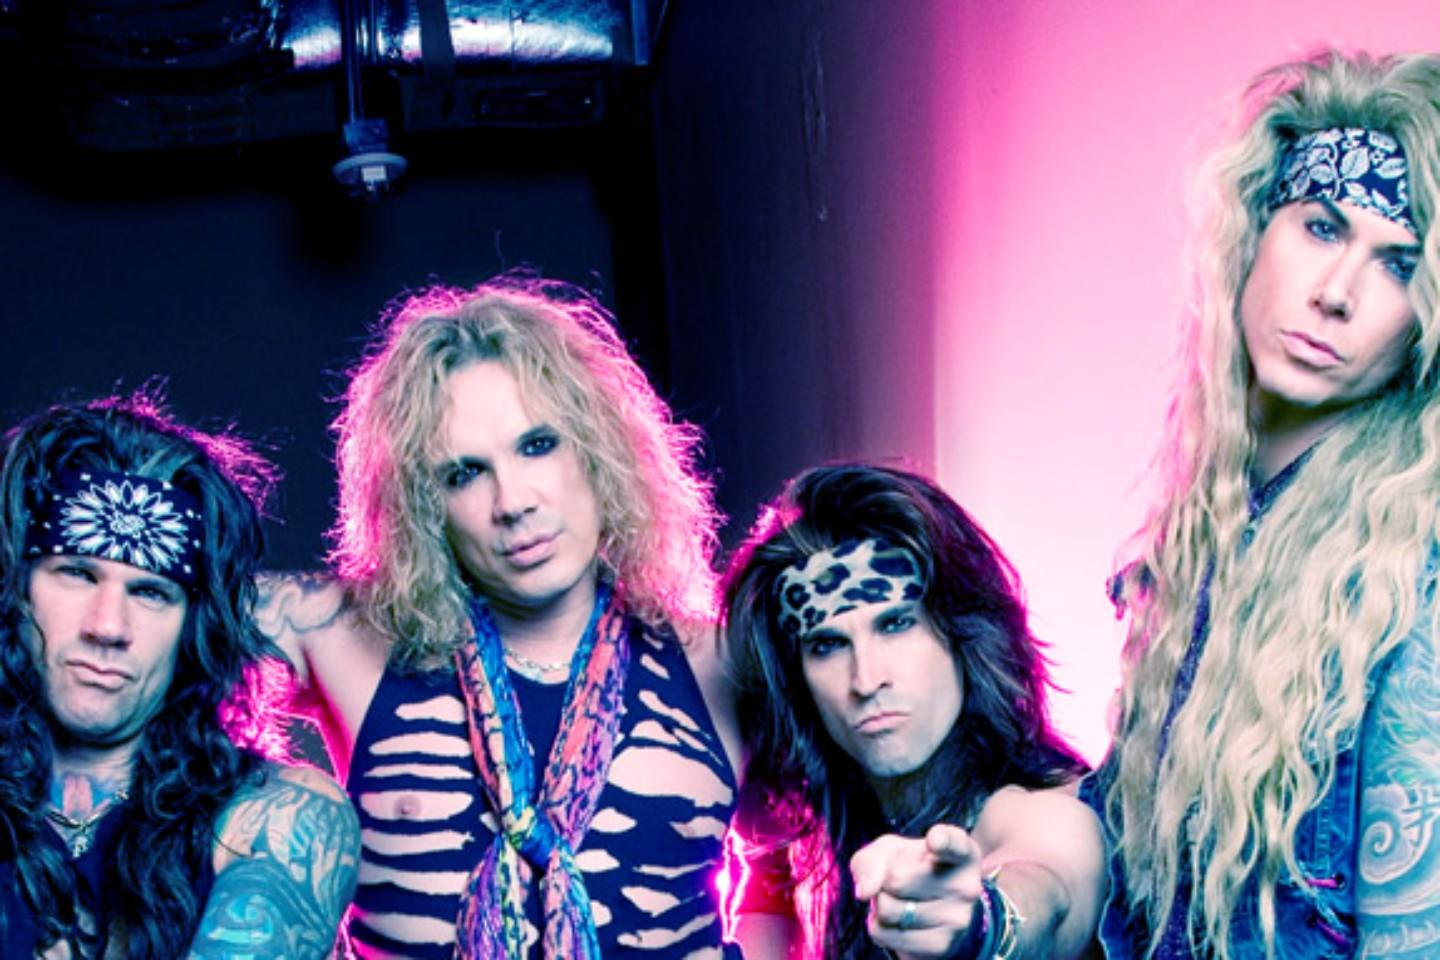 Steel Panther Tour Dates 2020 Steel Panther Tickets   Steel Panther Tour Dates 2019 and Concert